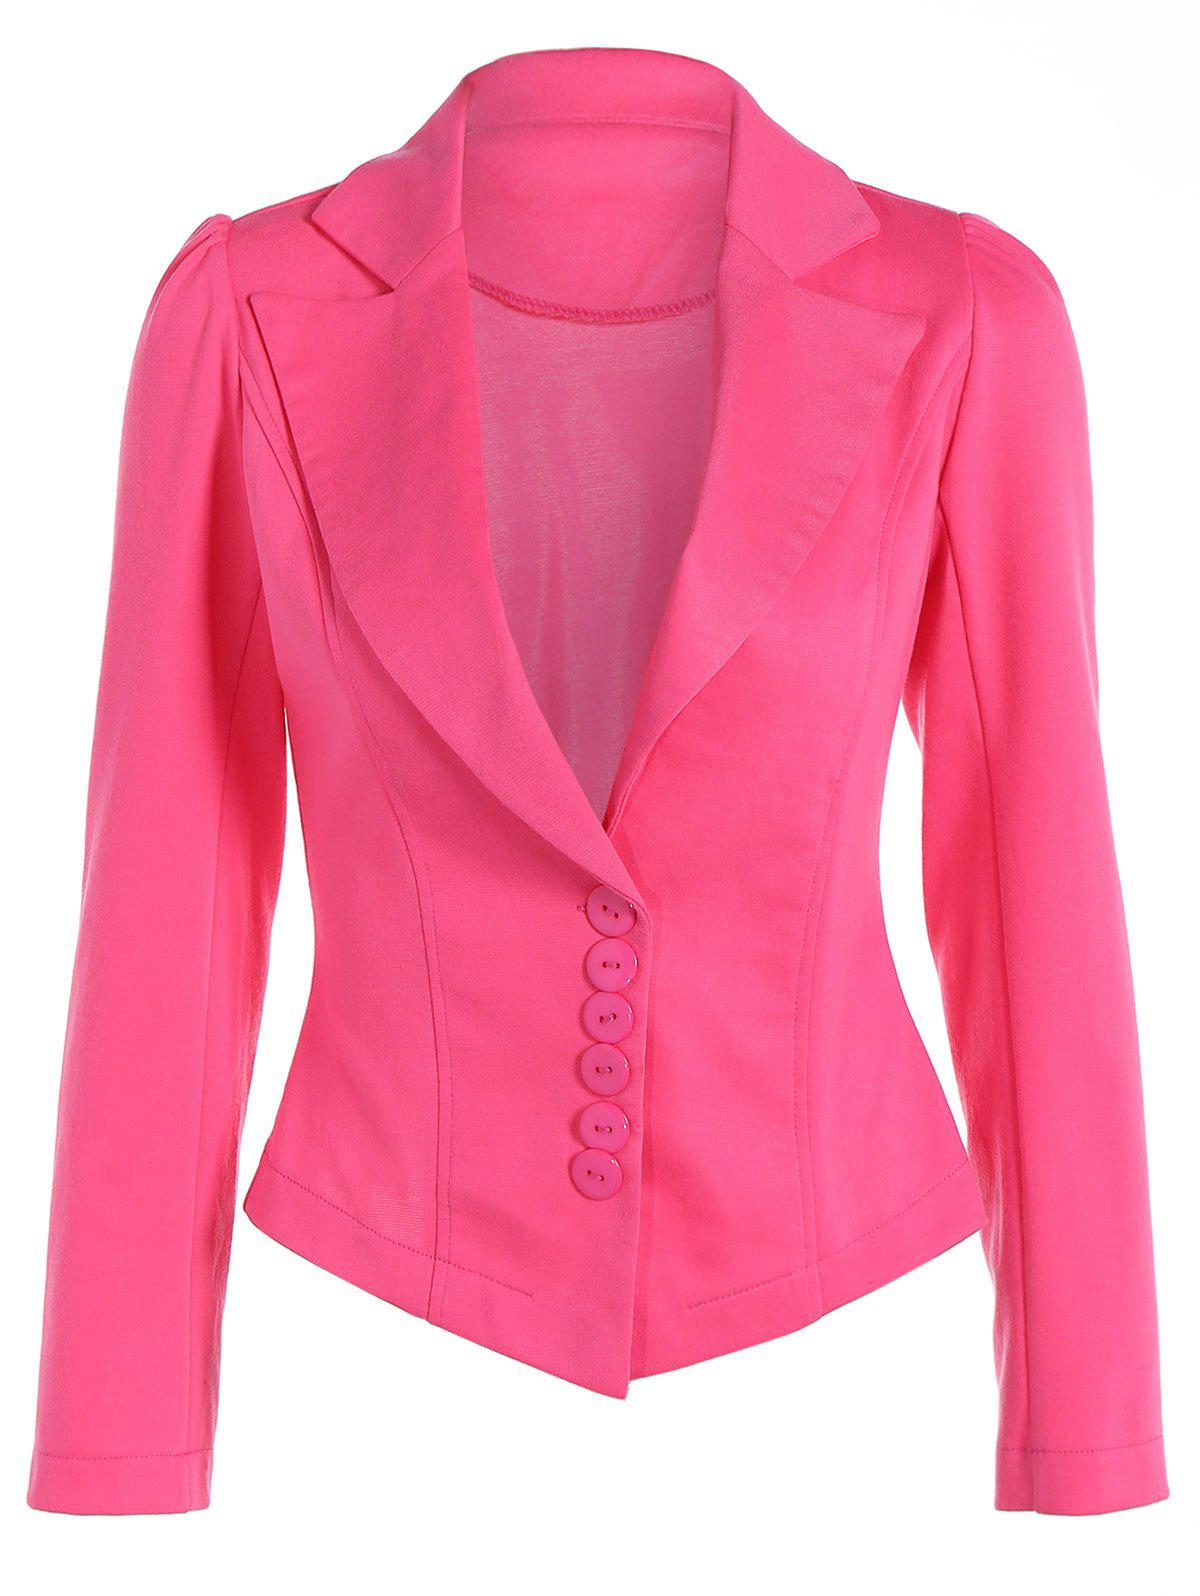 Asymmetric Lapel Single Breasted Blazer - DEEP PINK L